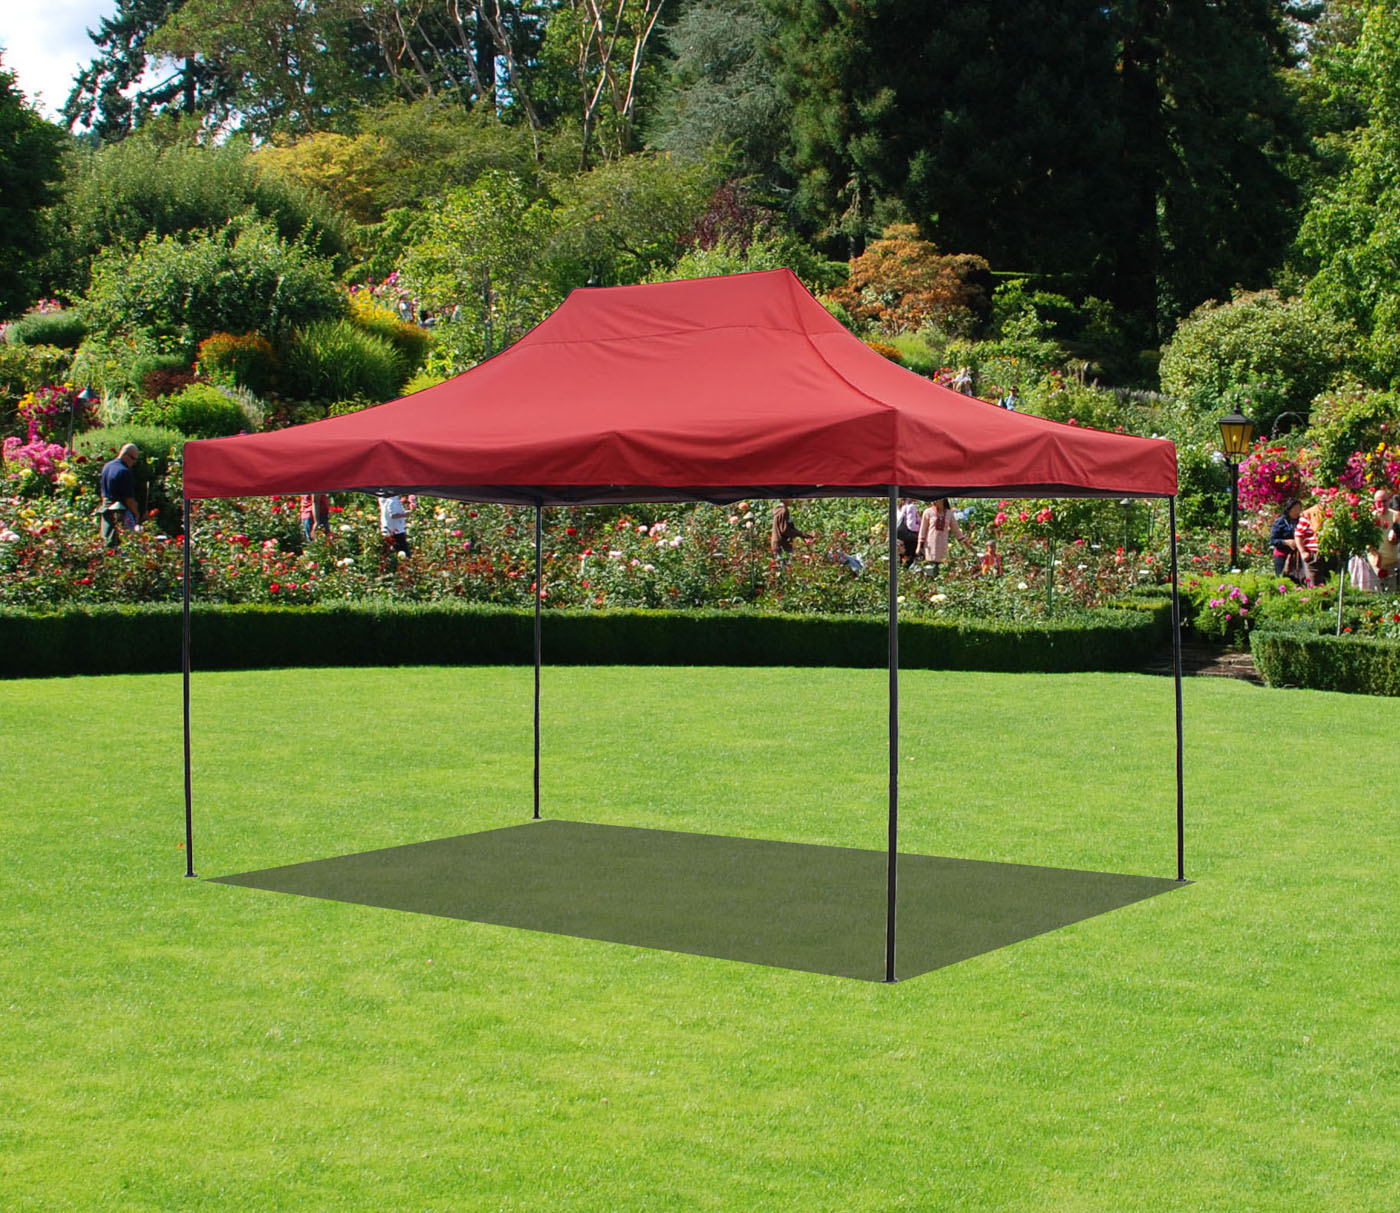 Canopy Tent 10 x 15 Commercial Fair Shelter Car Shelter Wedding Party Easy Pop Up by